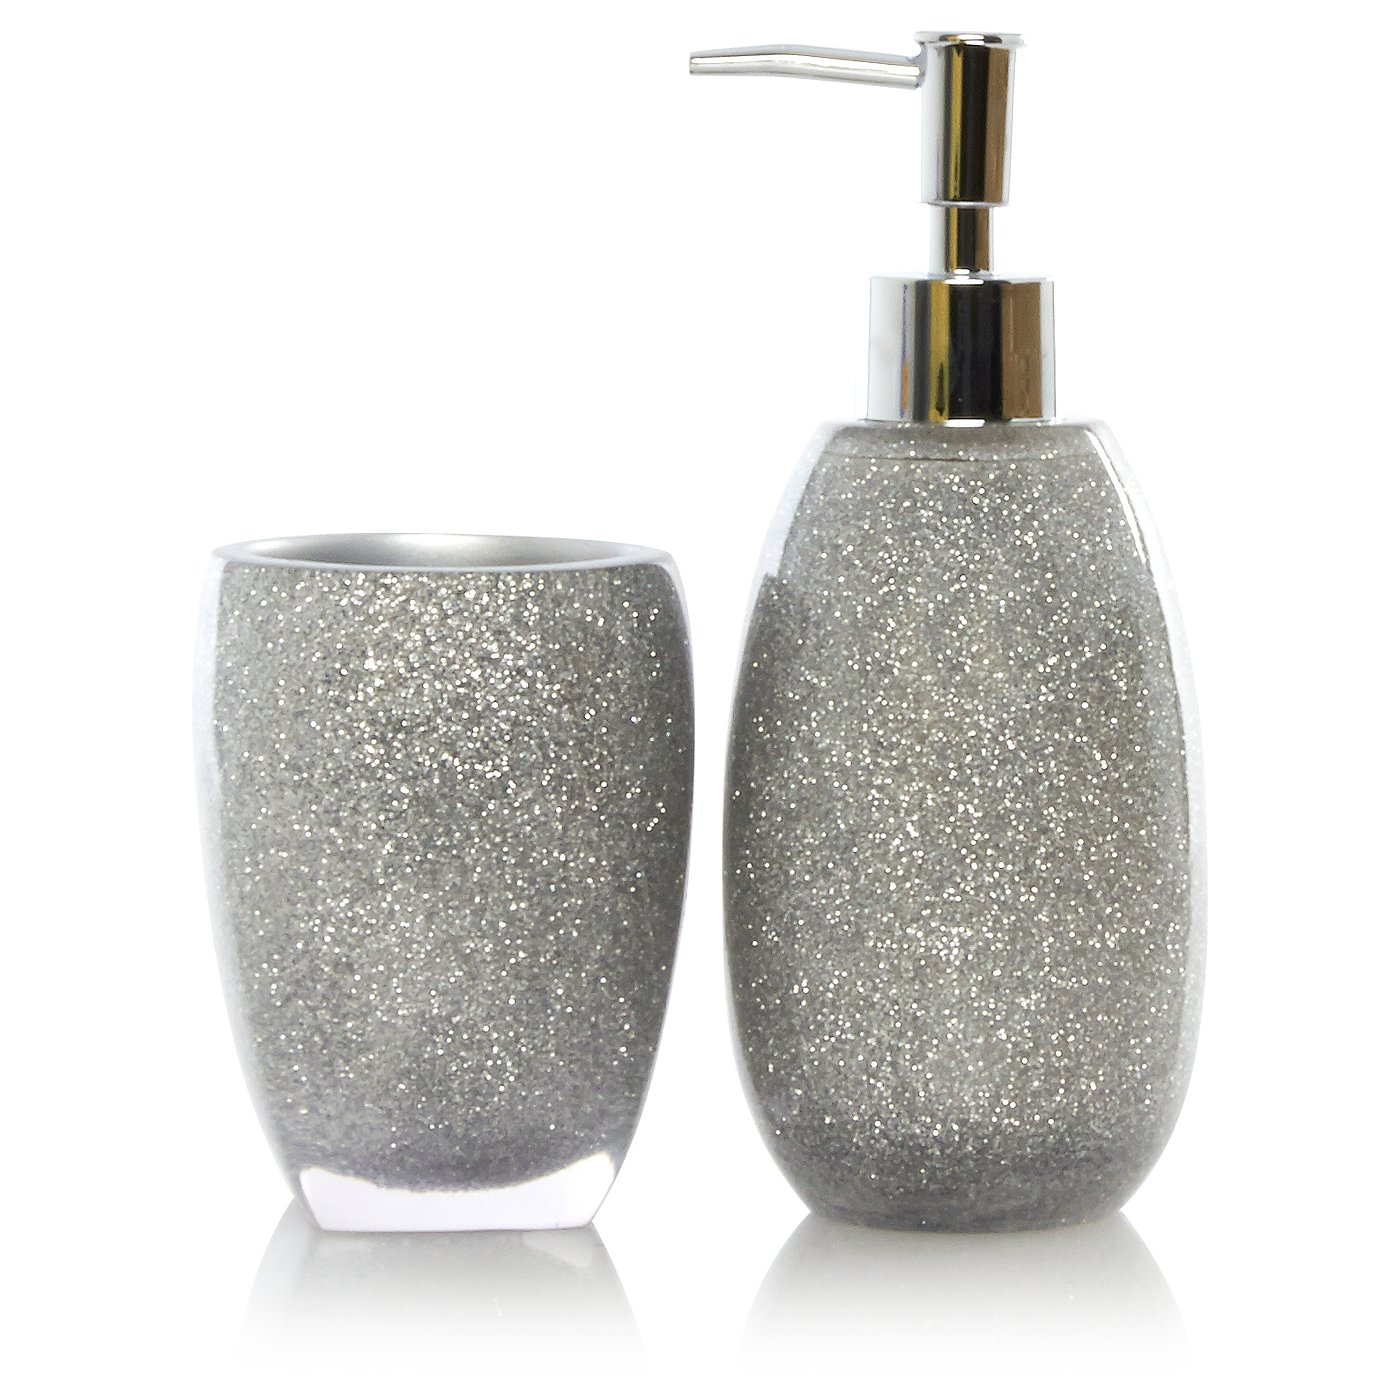 Silver Glitter Bath Accessories Range Loading Zoom